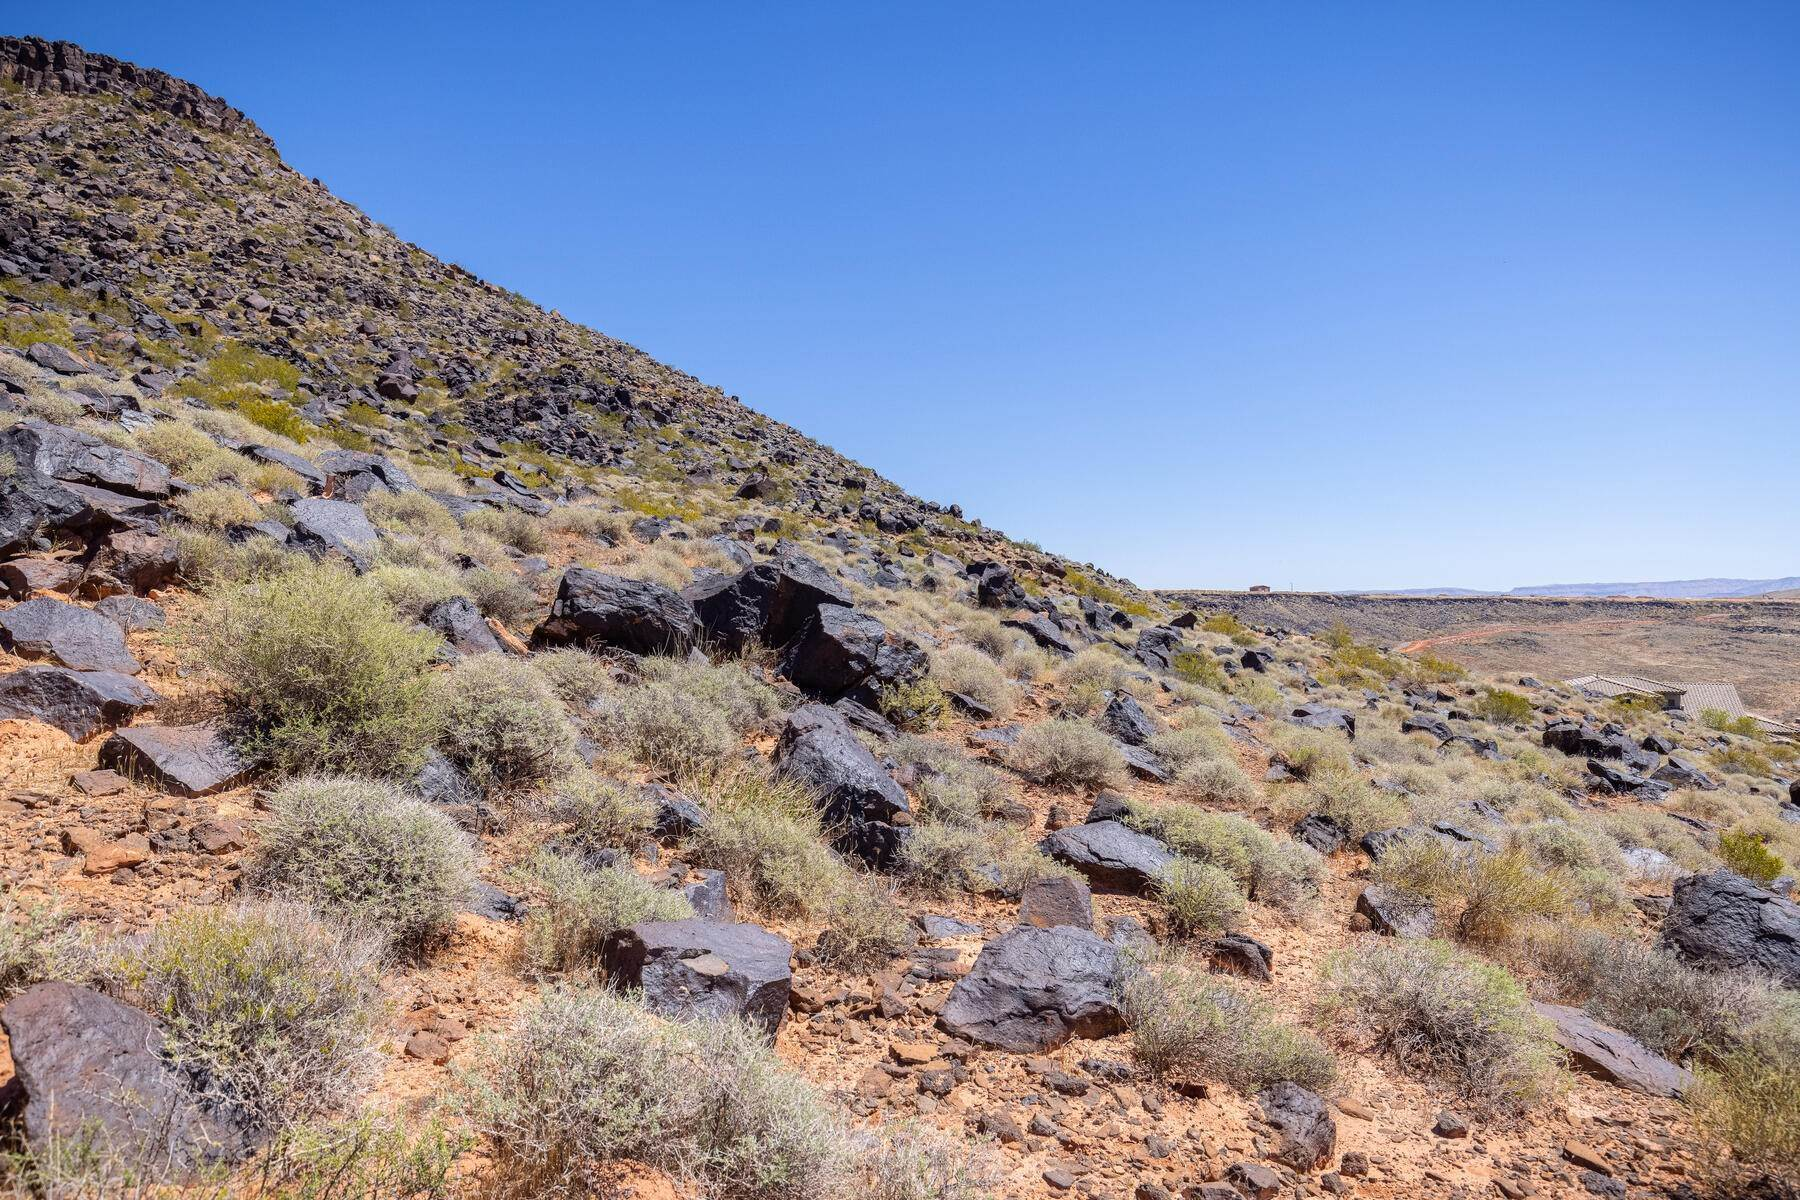 Property for Sale at Back To BLM Land With VIEWS West Fandango Drive, Lot 30 St. George, Utah 84770 United States